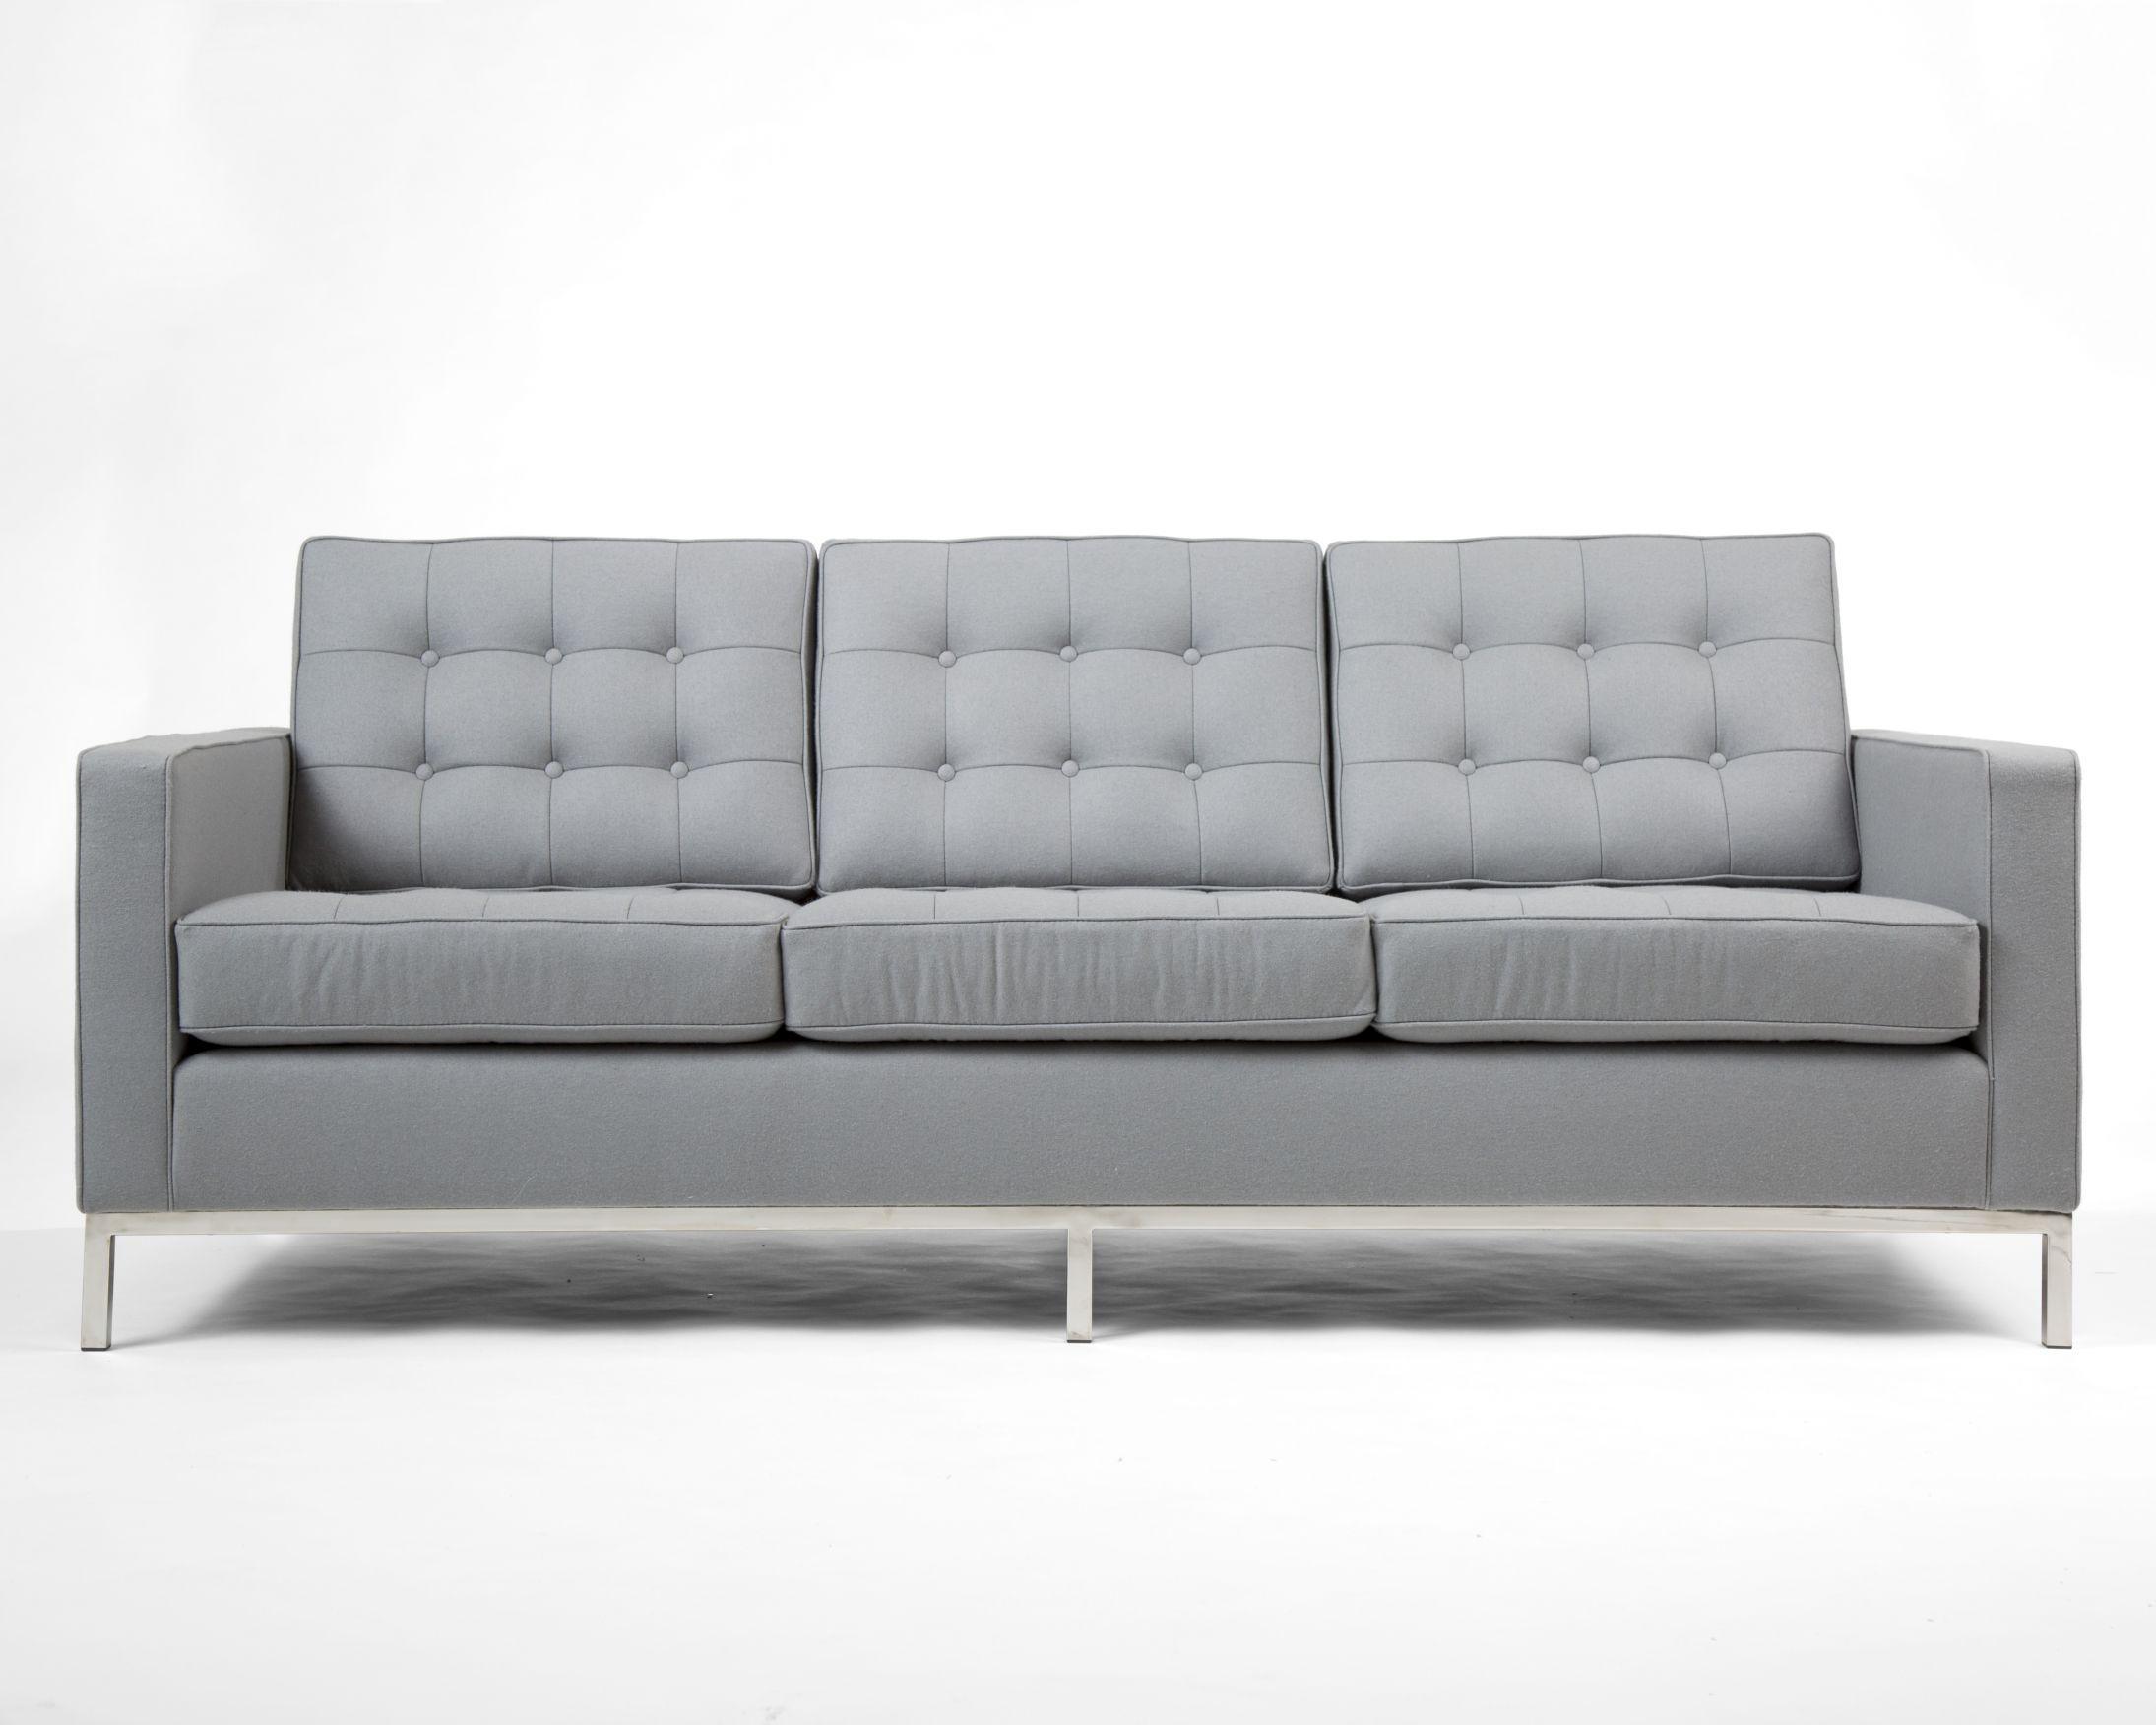 firenze sofa grey throws for sofas 20 inspirations florence beds ideas